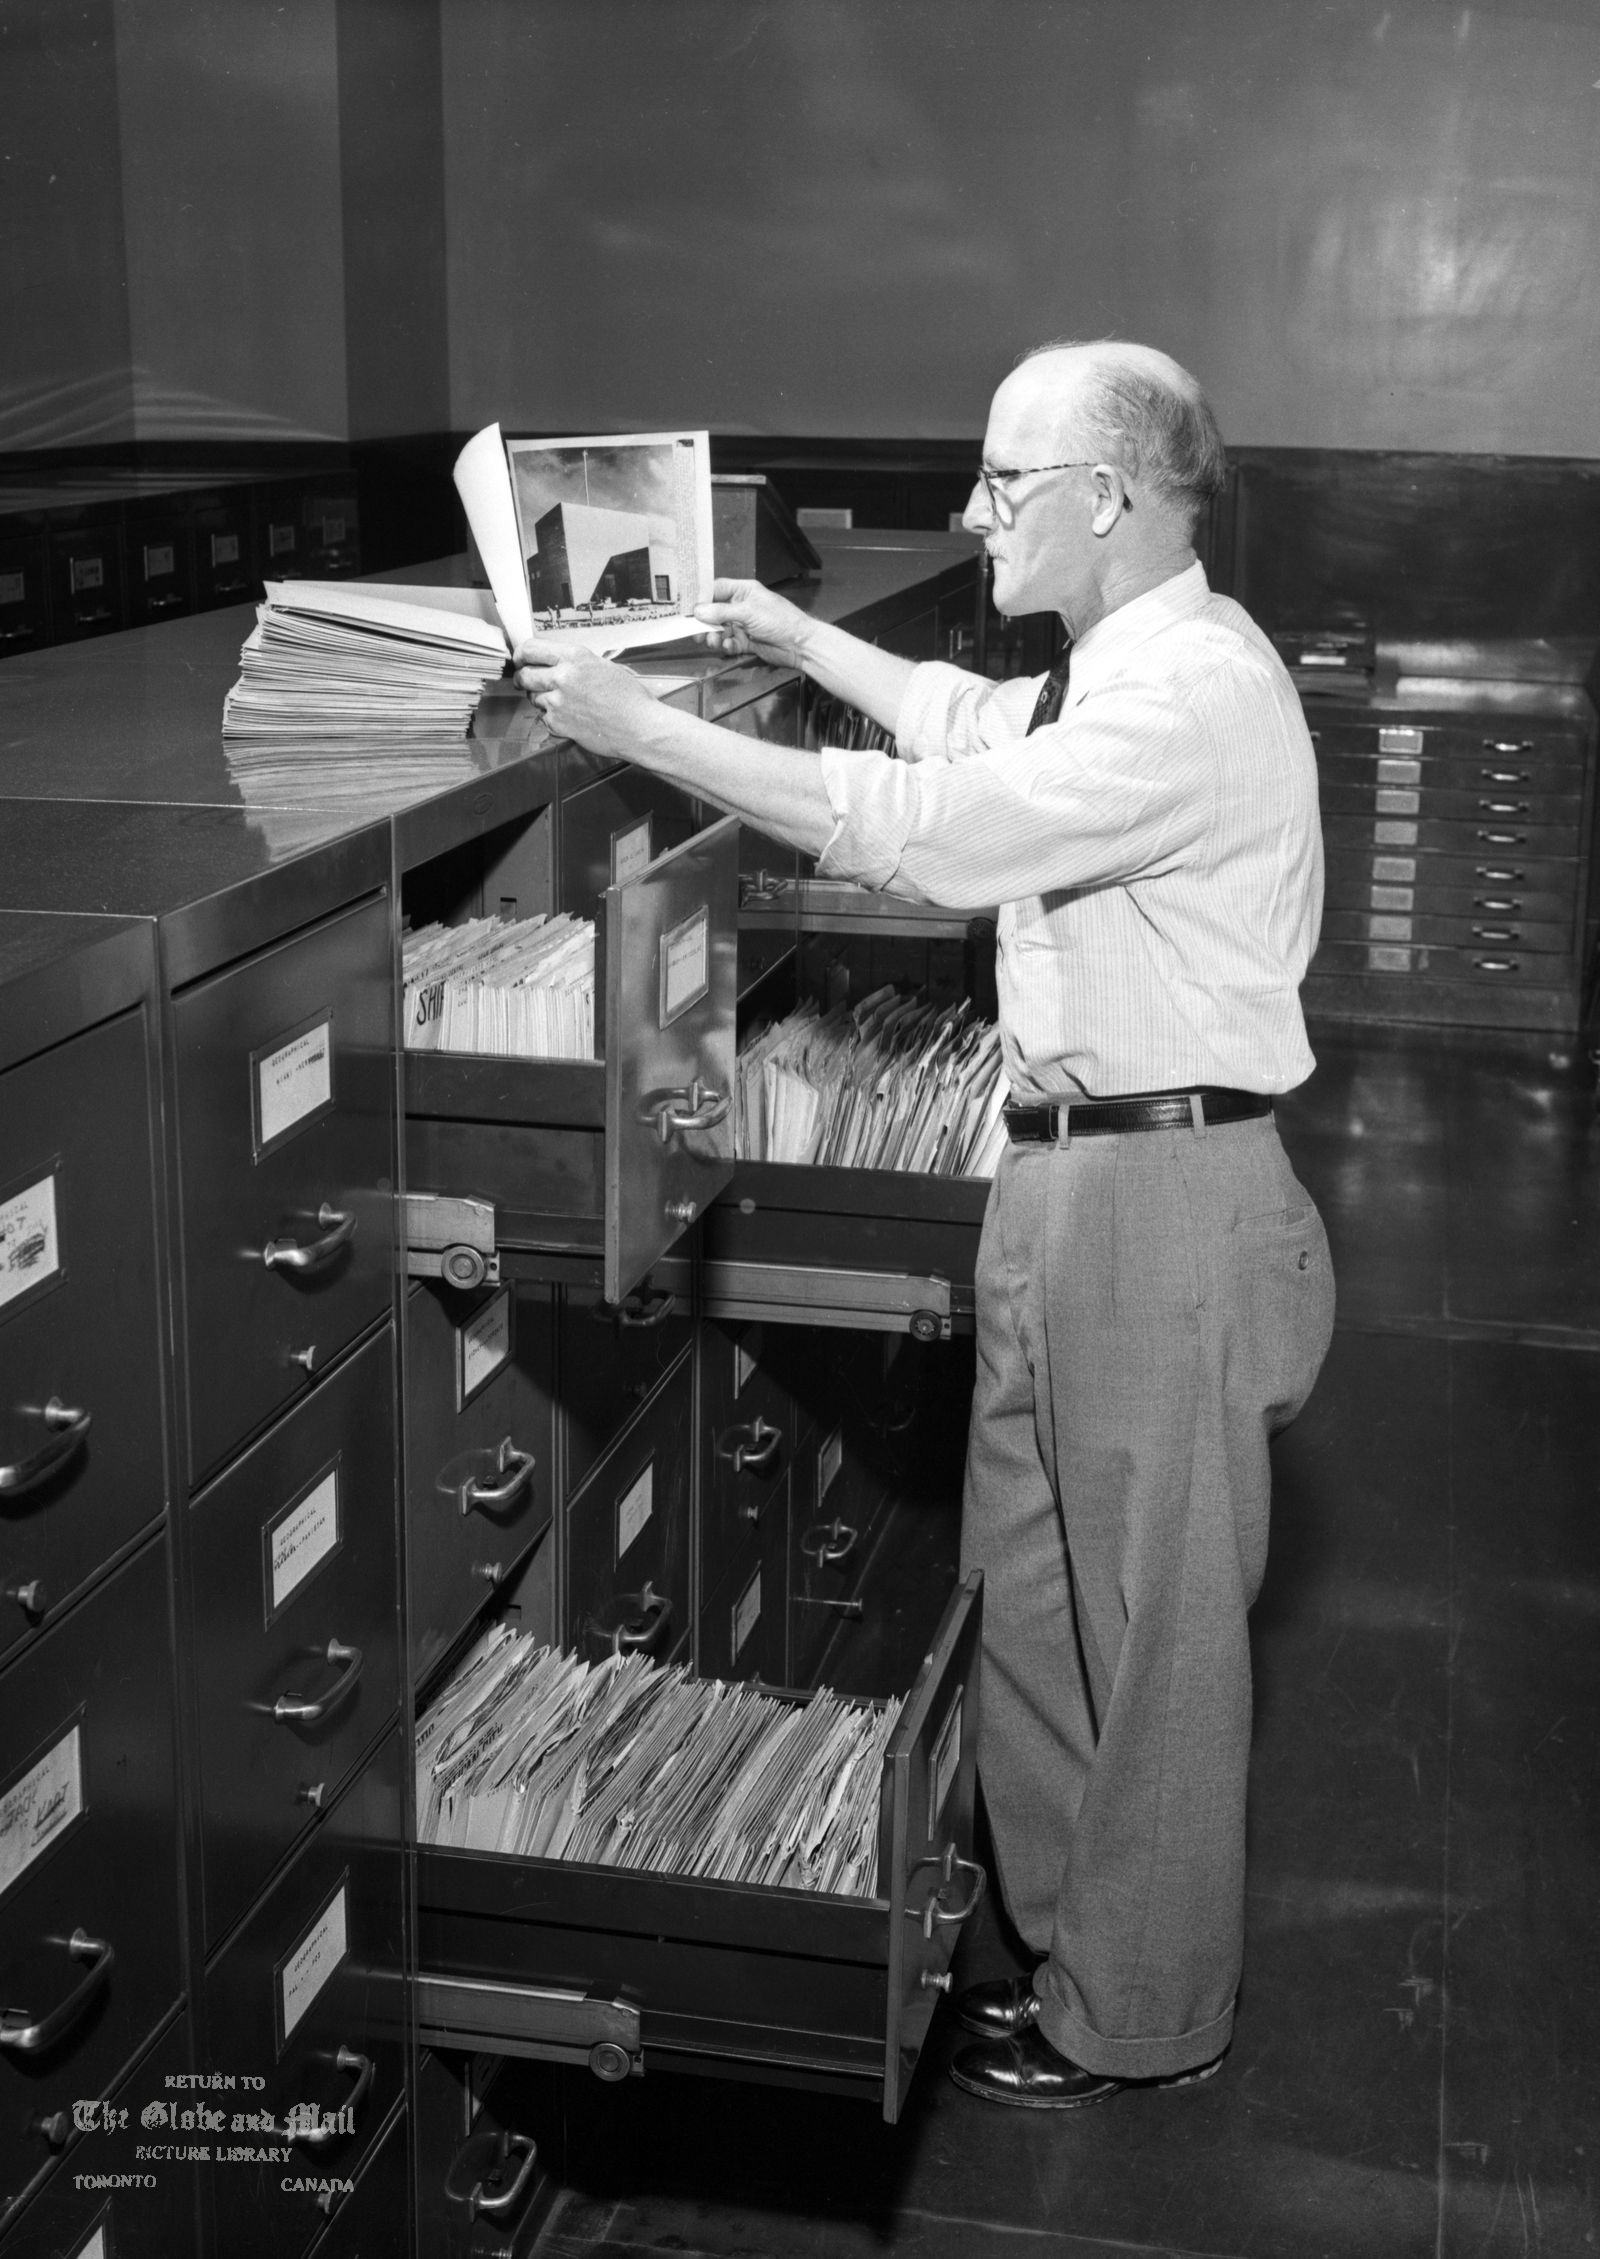 Globe and Mail Library Clerk by Photo Cabinets, 1957. Credit: The Globe and Mail.